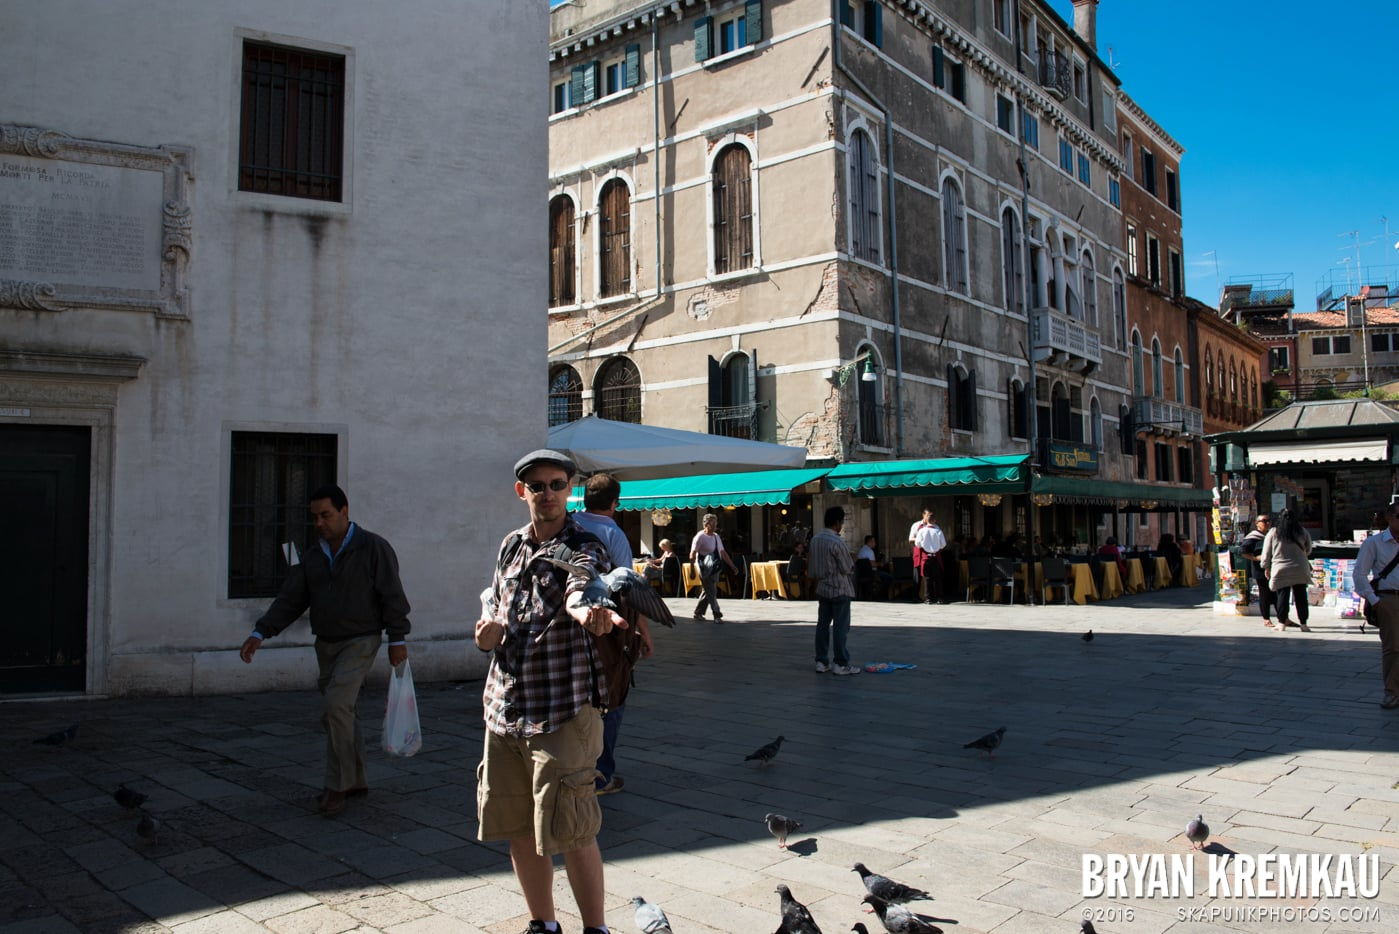 Italy Vacation - Day 4: Venice - 9.12.13 (74)